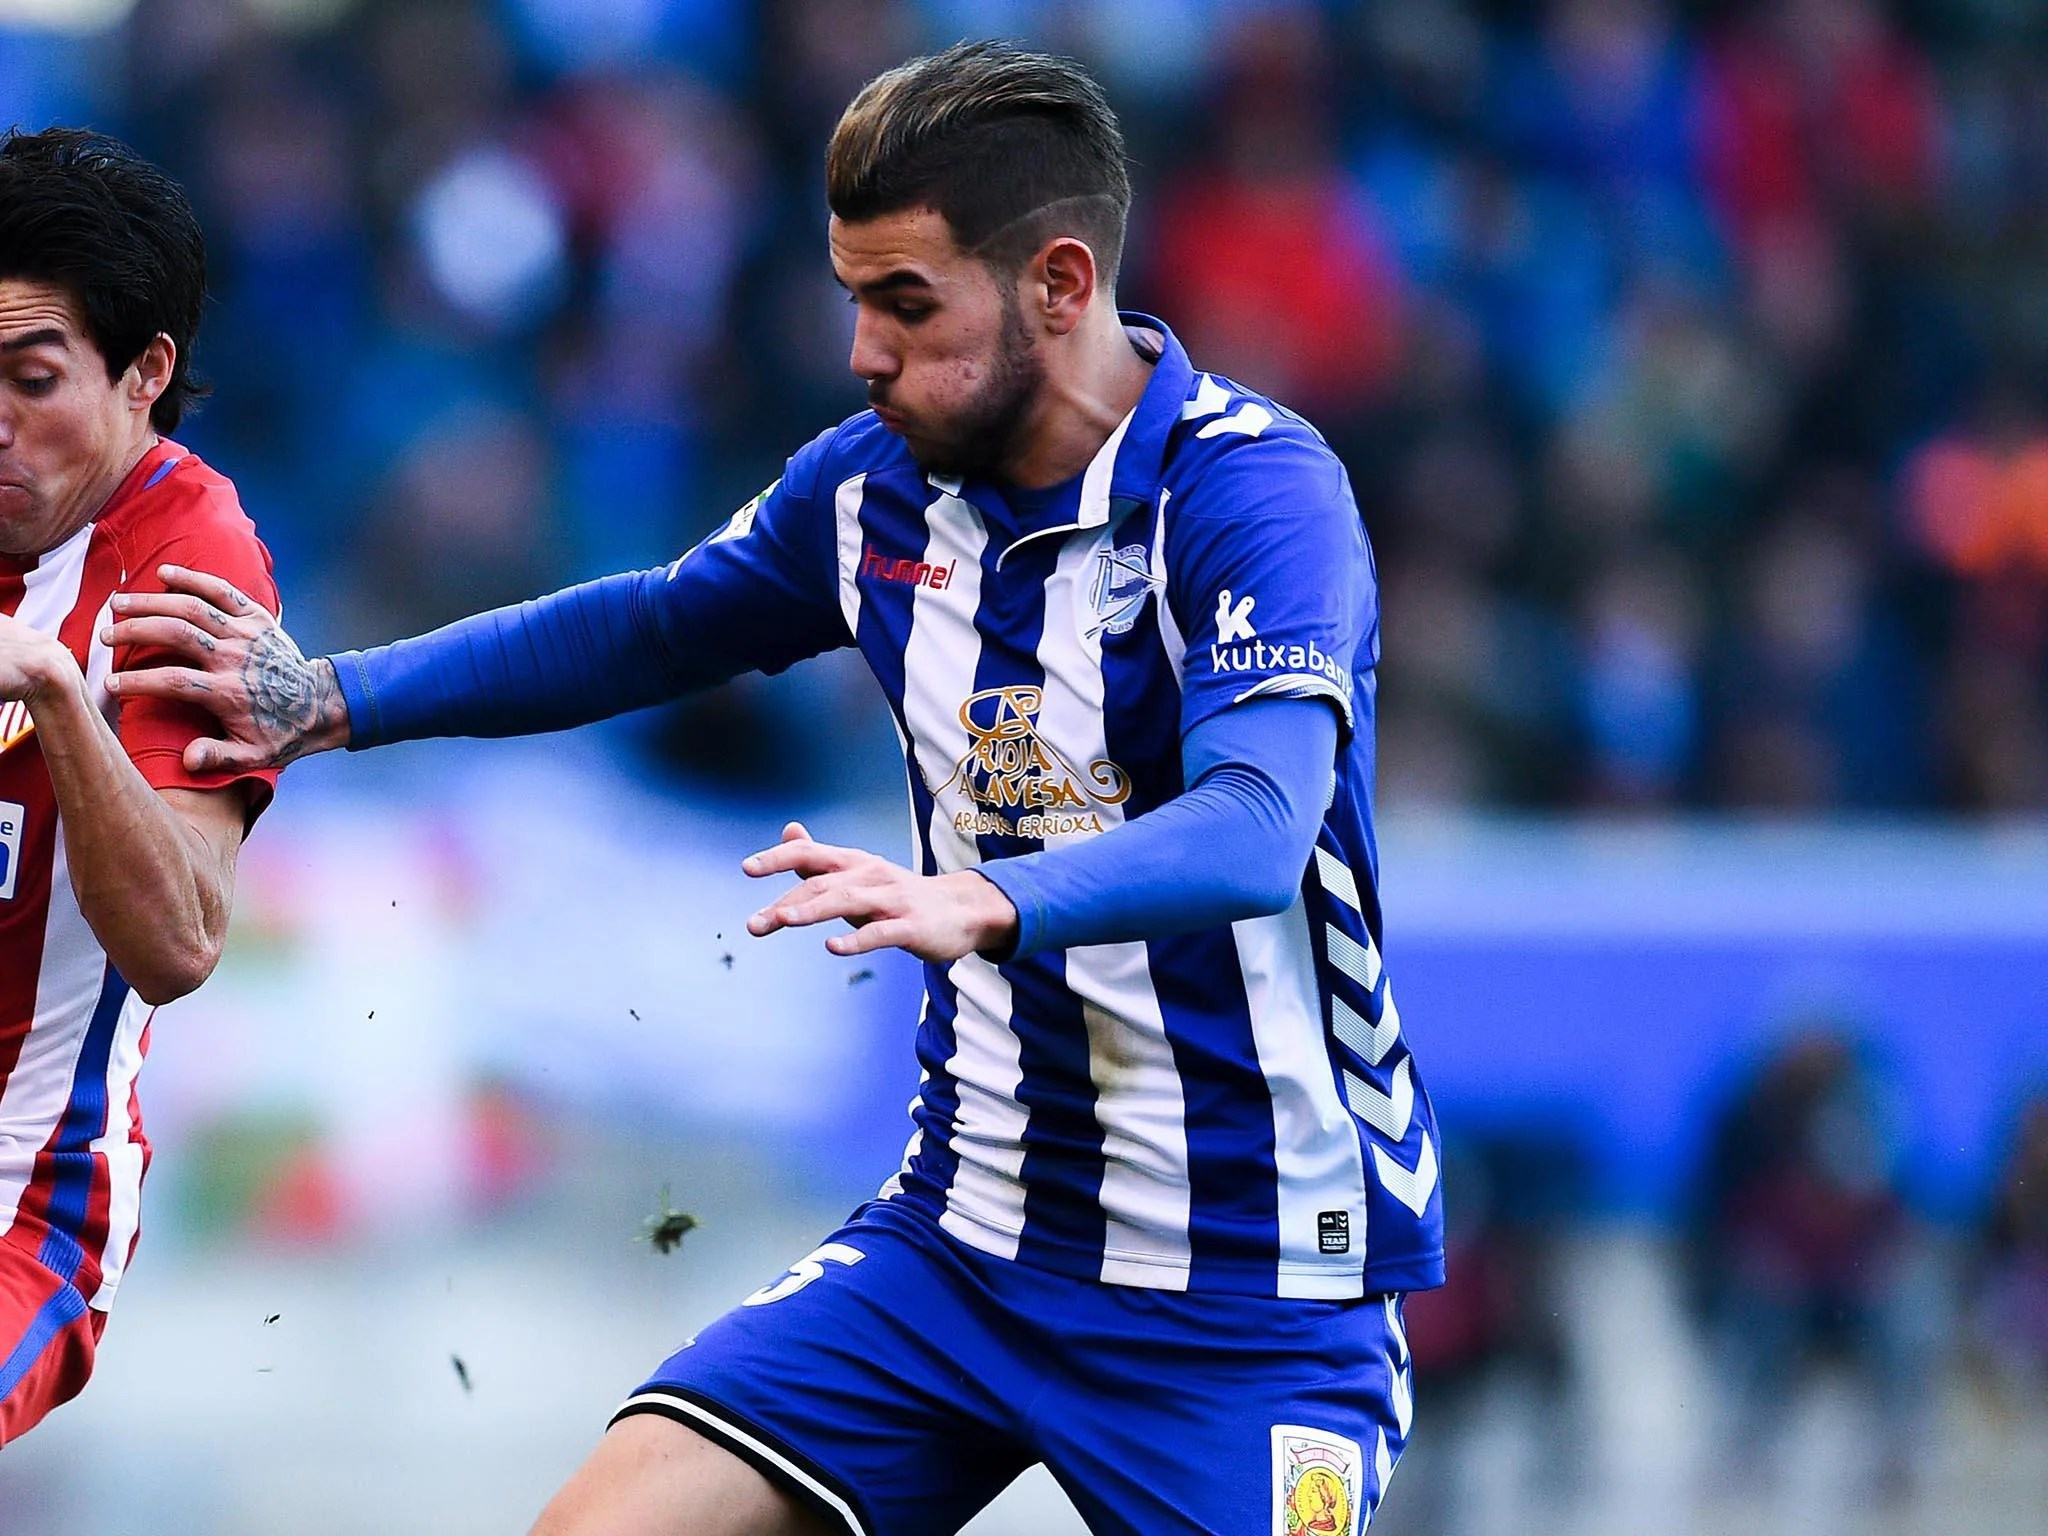 His jersey number is 19. Real Madrid target Theo Hernandez goes missing from France ...